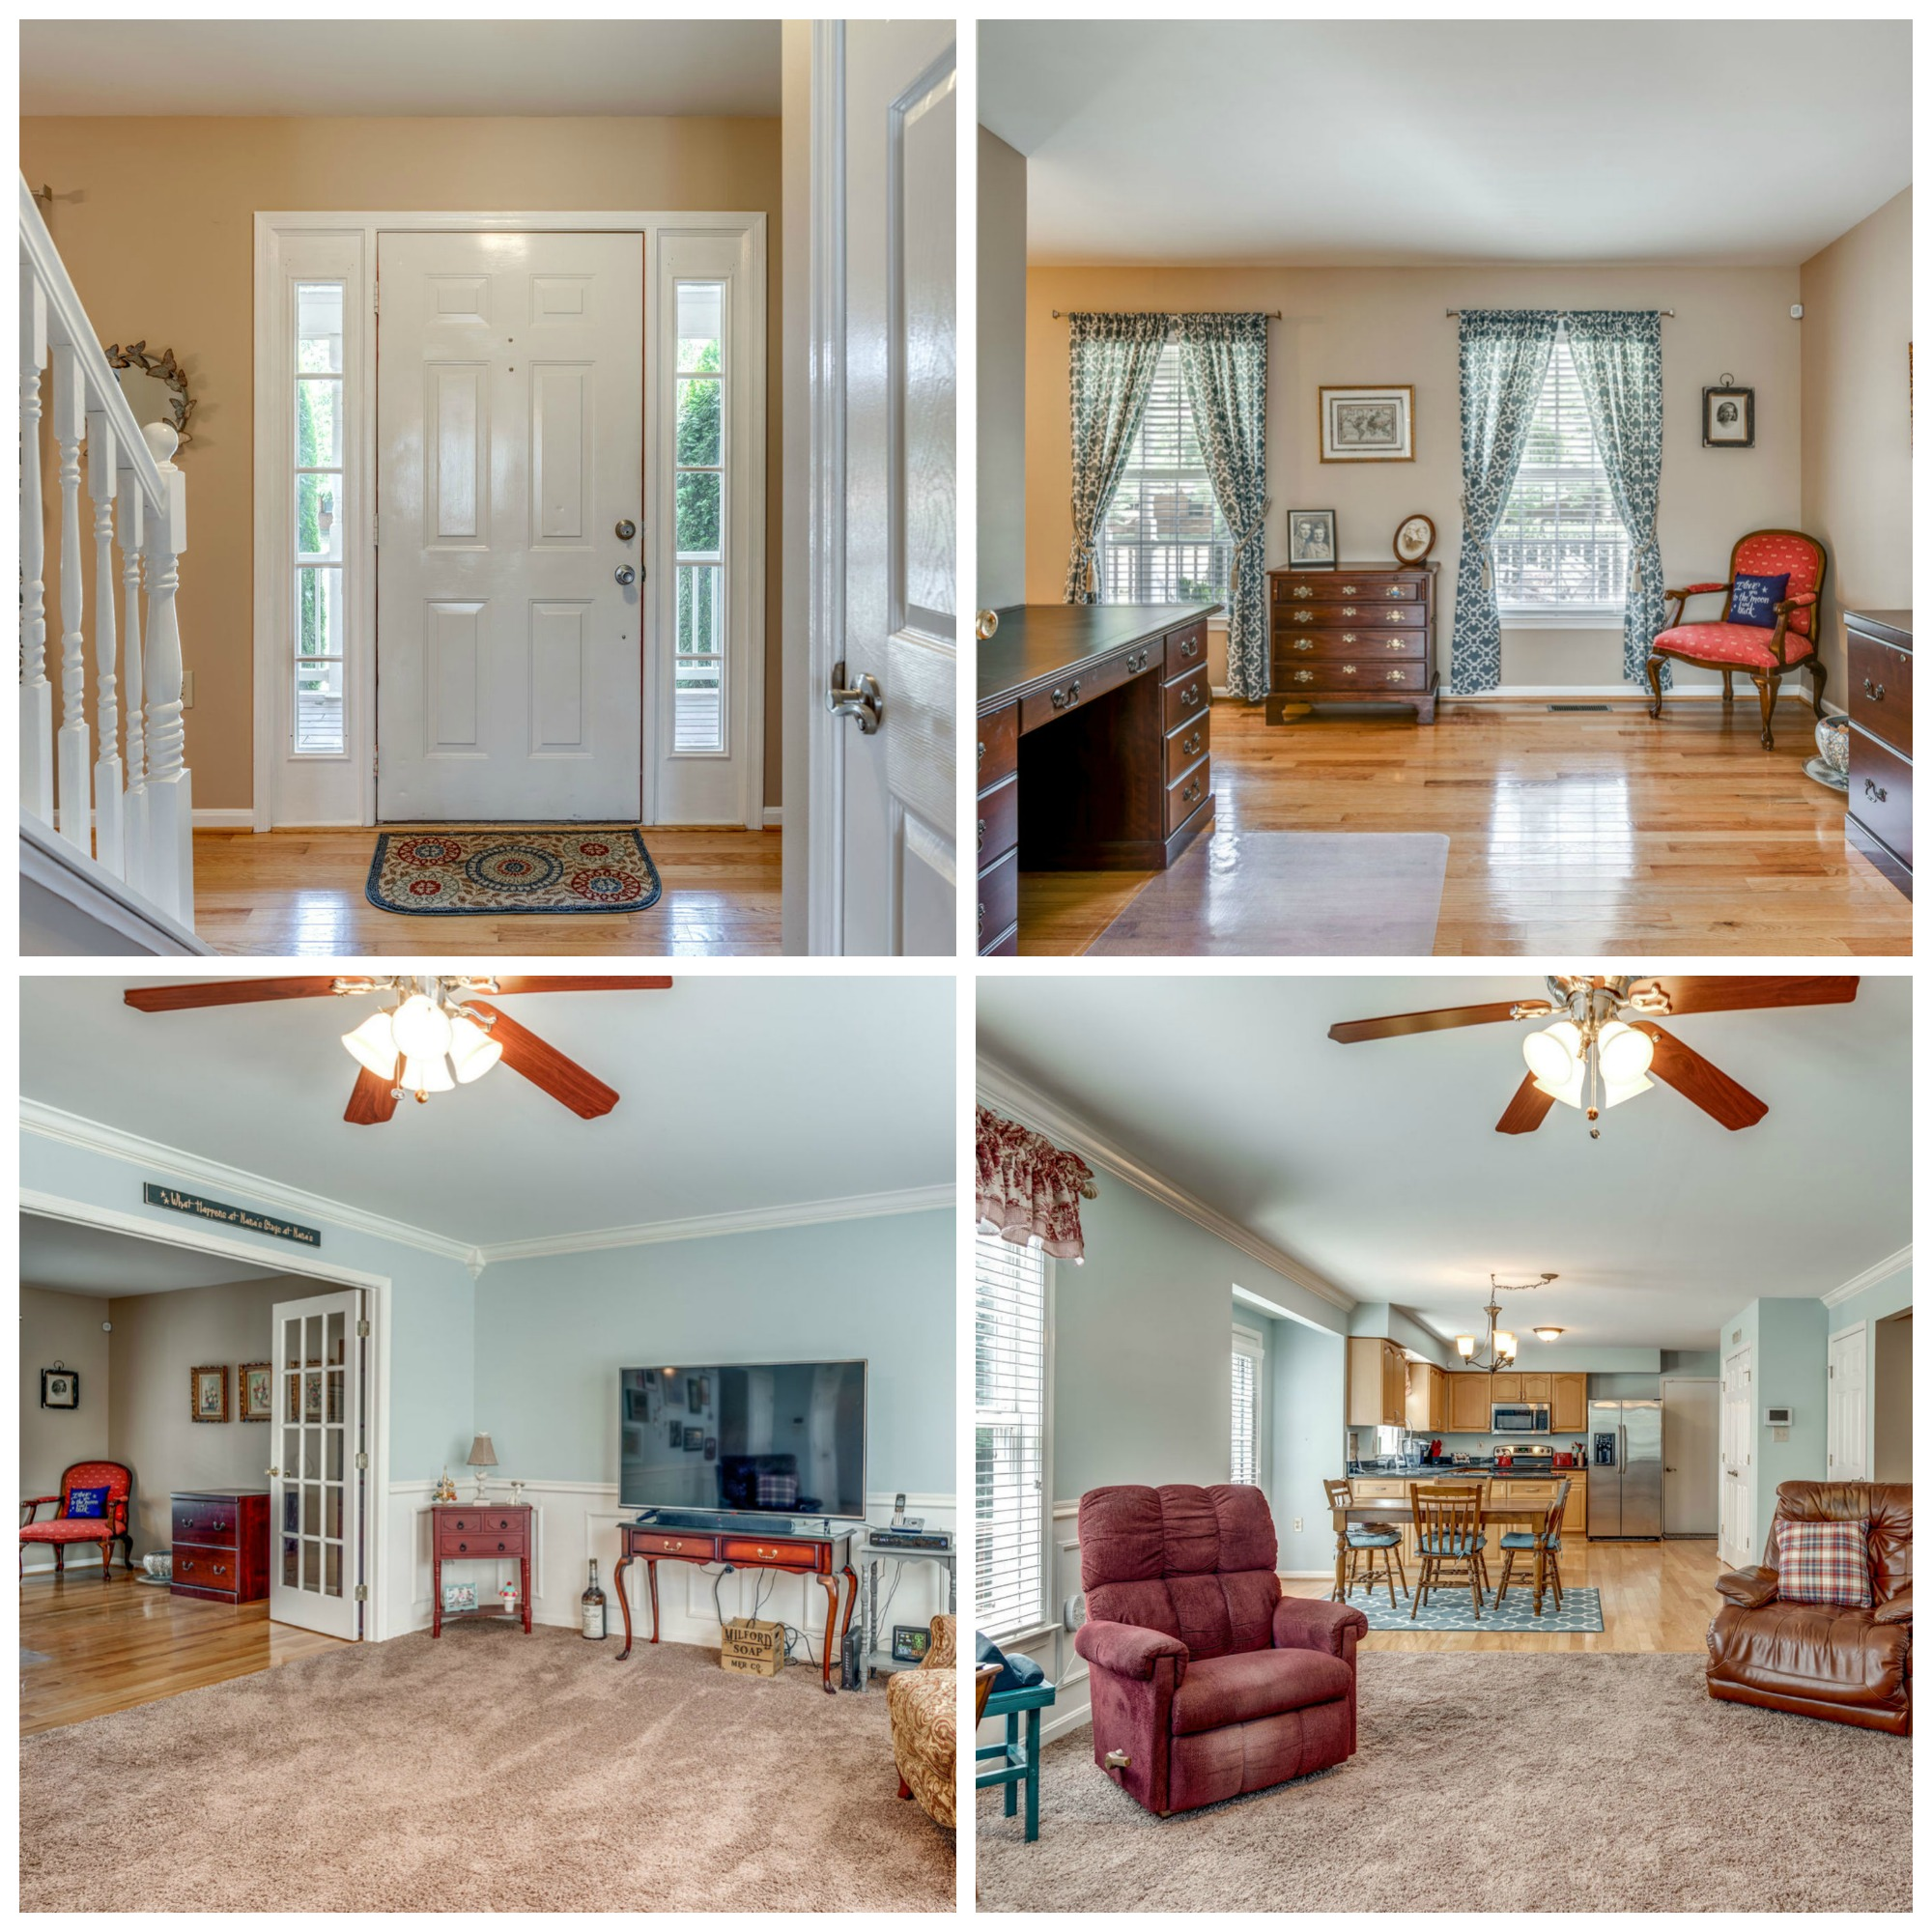 327 Old Waterford Rd NW, Leesburg - Living and Family Room